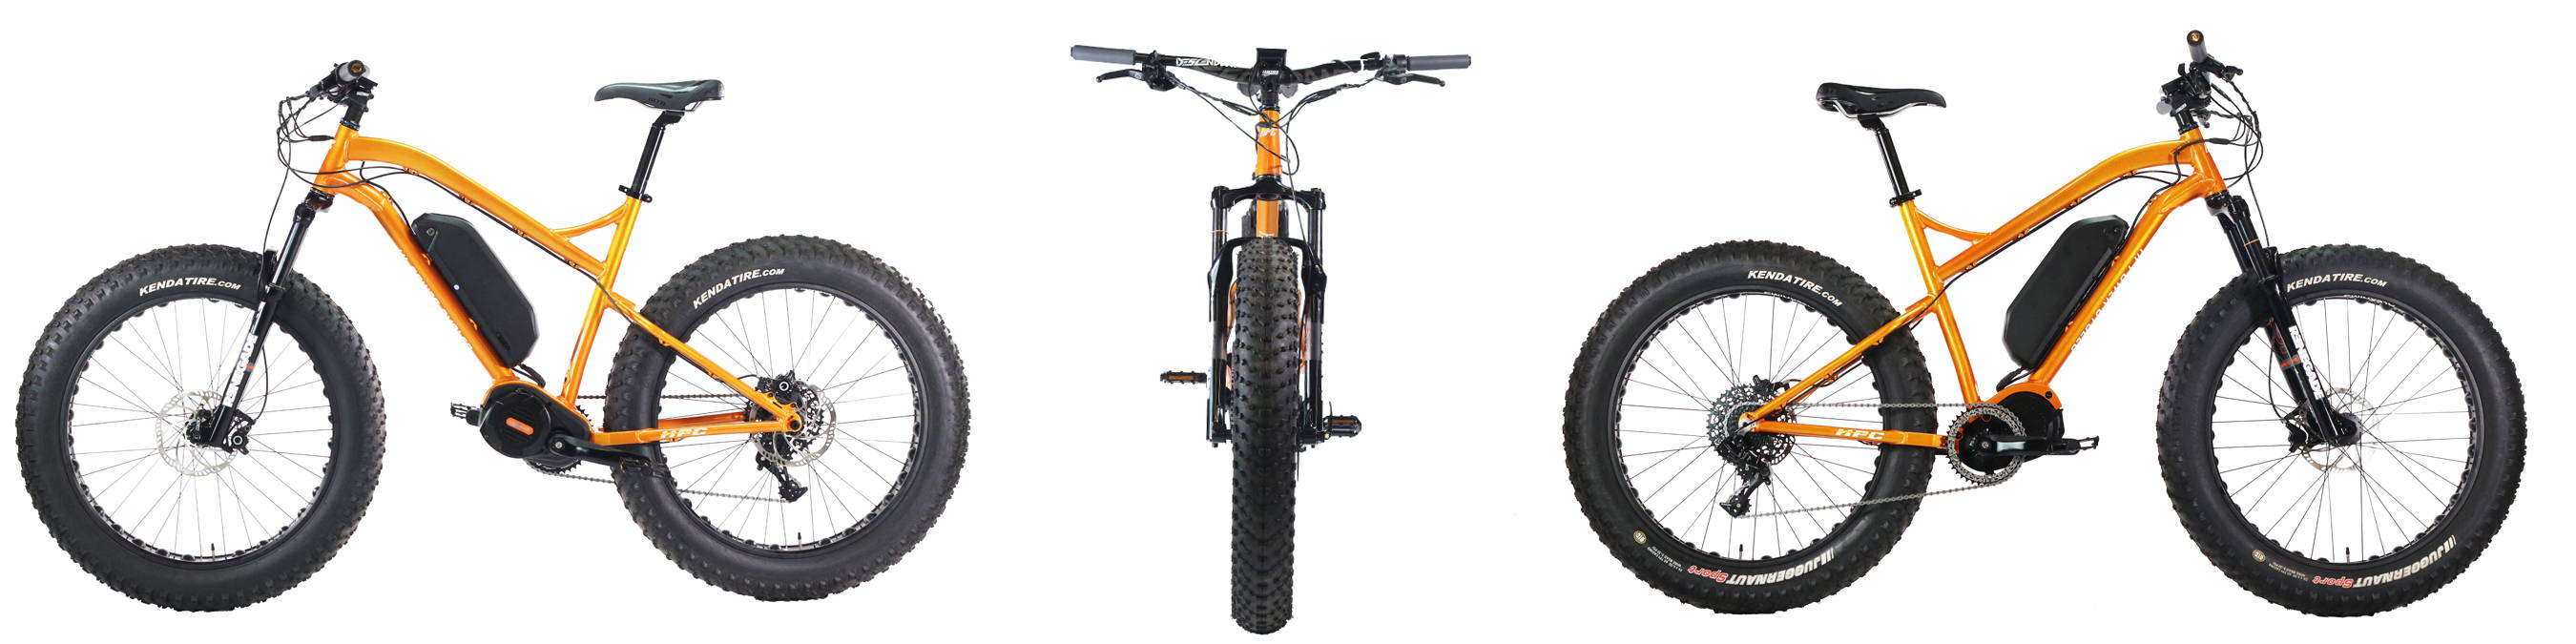 Titan High Performance Fat Tire Electric Bike | Hi Power Cycles